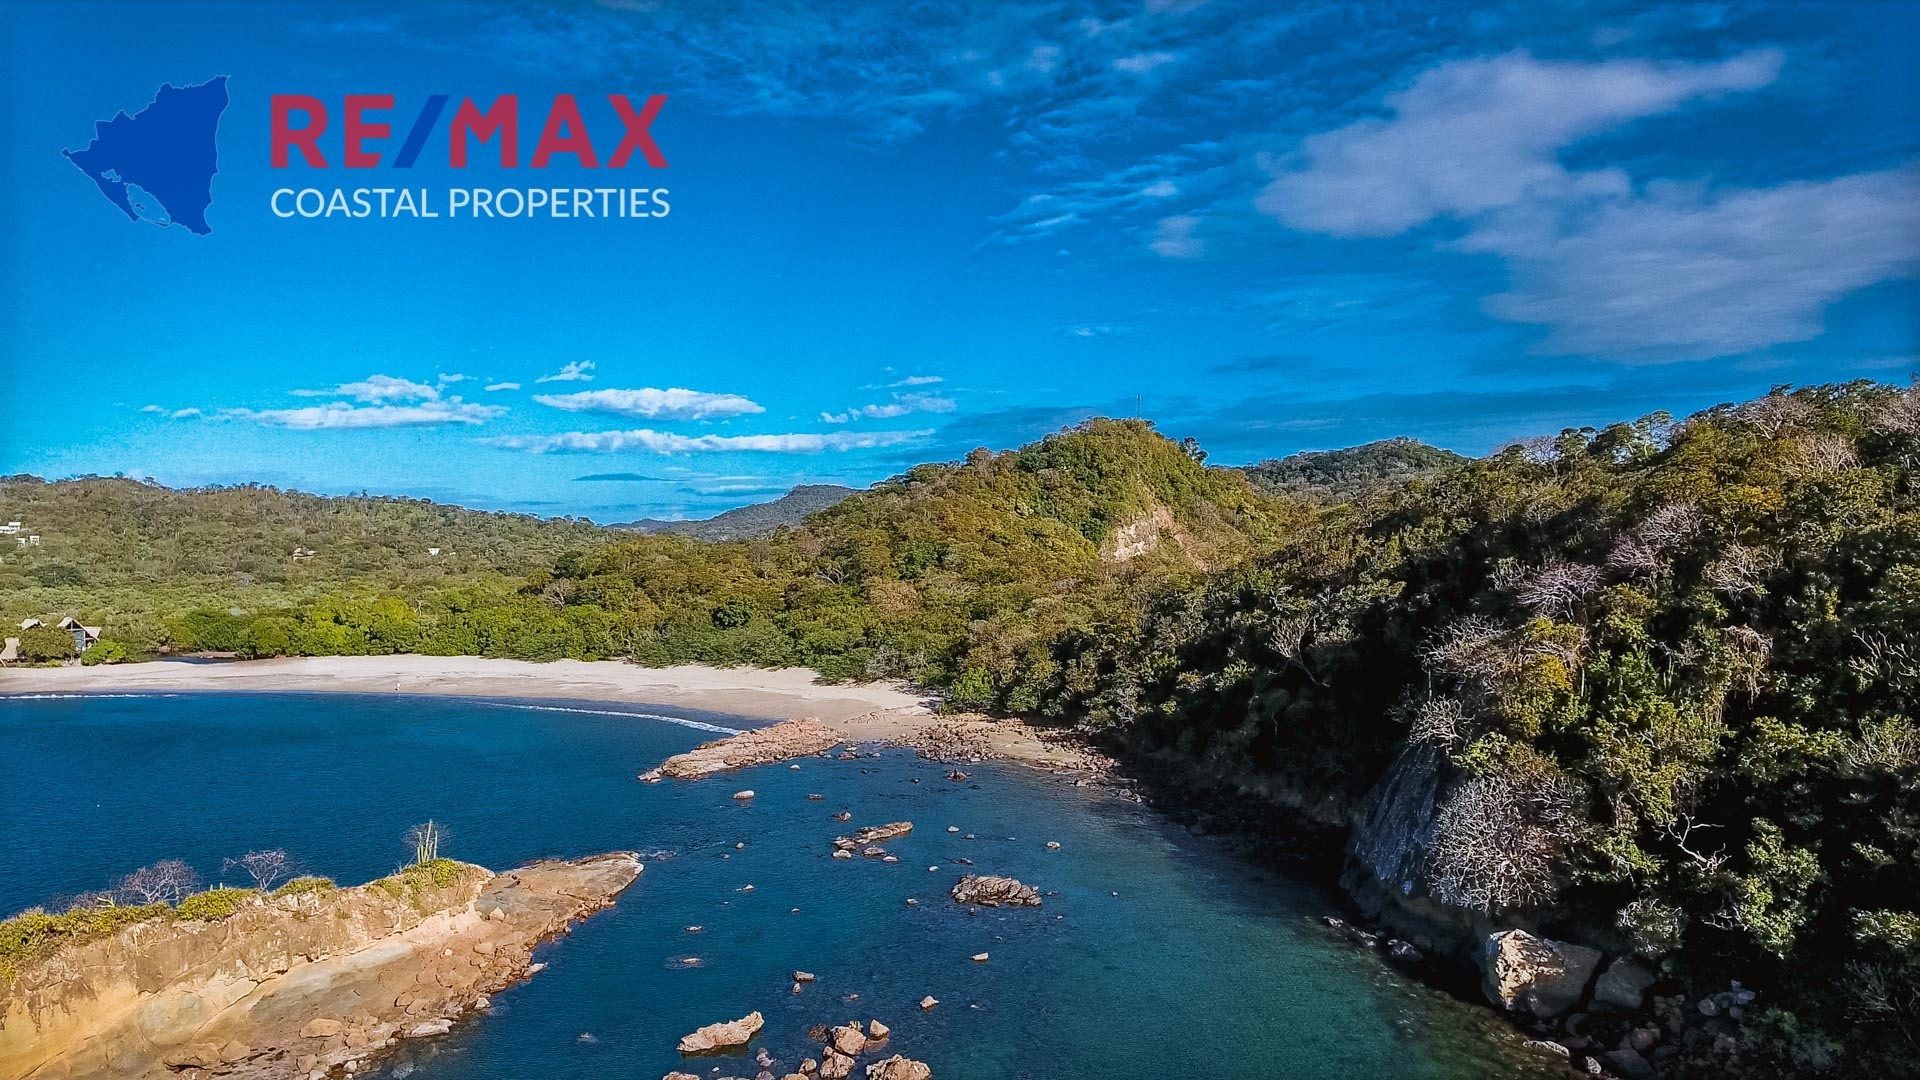 https://property-nicaragua.com/pedrodev/wp-content/uploads/2020/07/Arcadia-Gigante-Redonda-Development-Opportunity-REMAX-Coastal-Properties-4.jpg